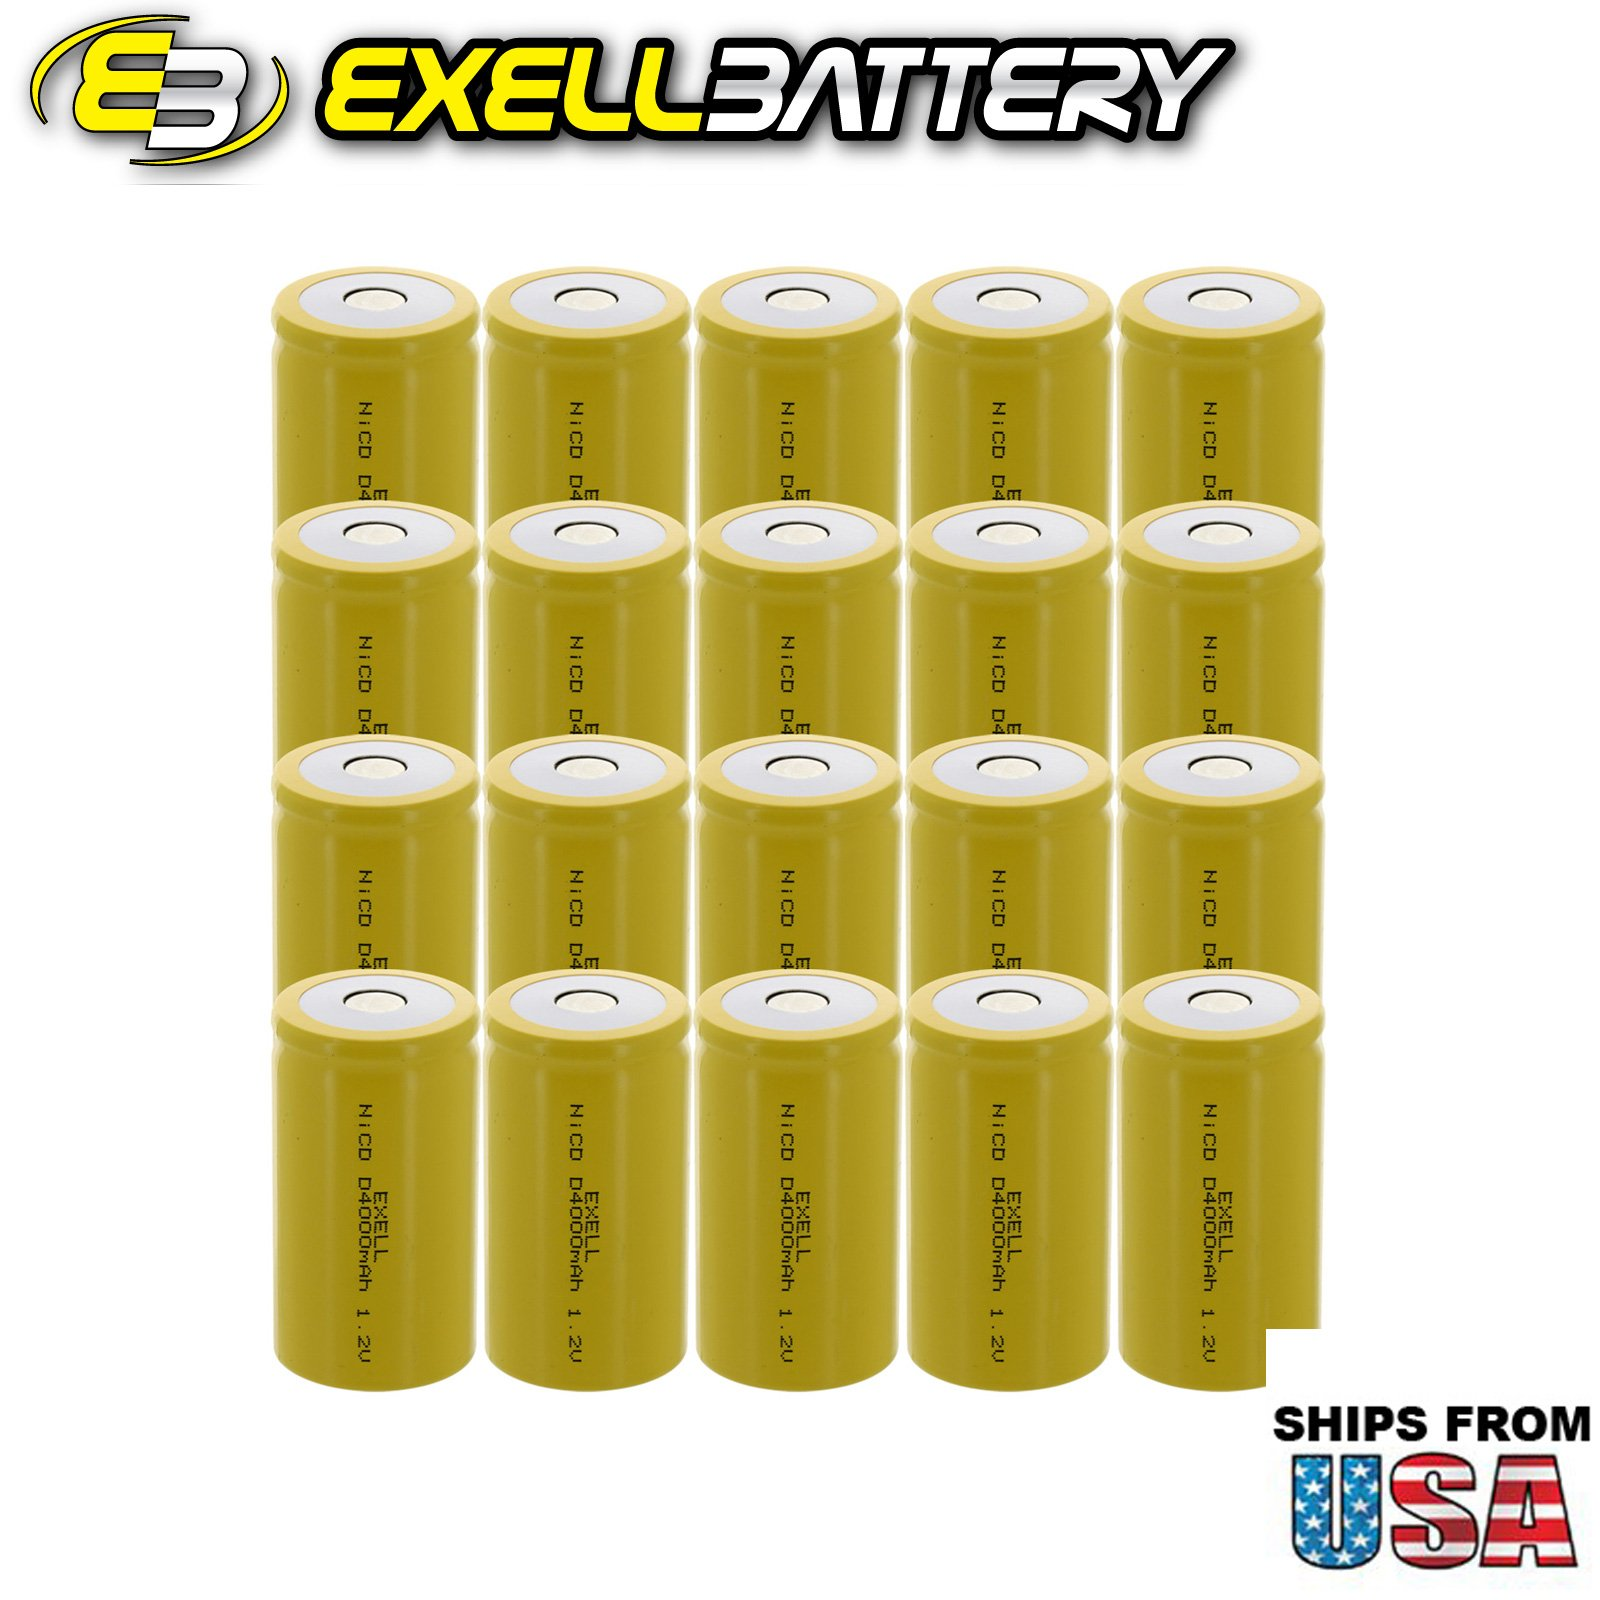 20x Exell D Size 1.2V 4000mAh NiCD Flat Top Rechargeable Batteries for high power static applications (Telecoms, UPS and Smart grid), electric mopeds, meters, radios, RC devices, electric tools